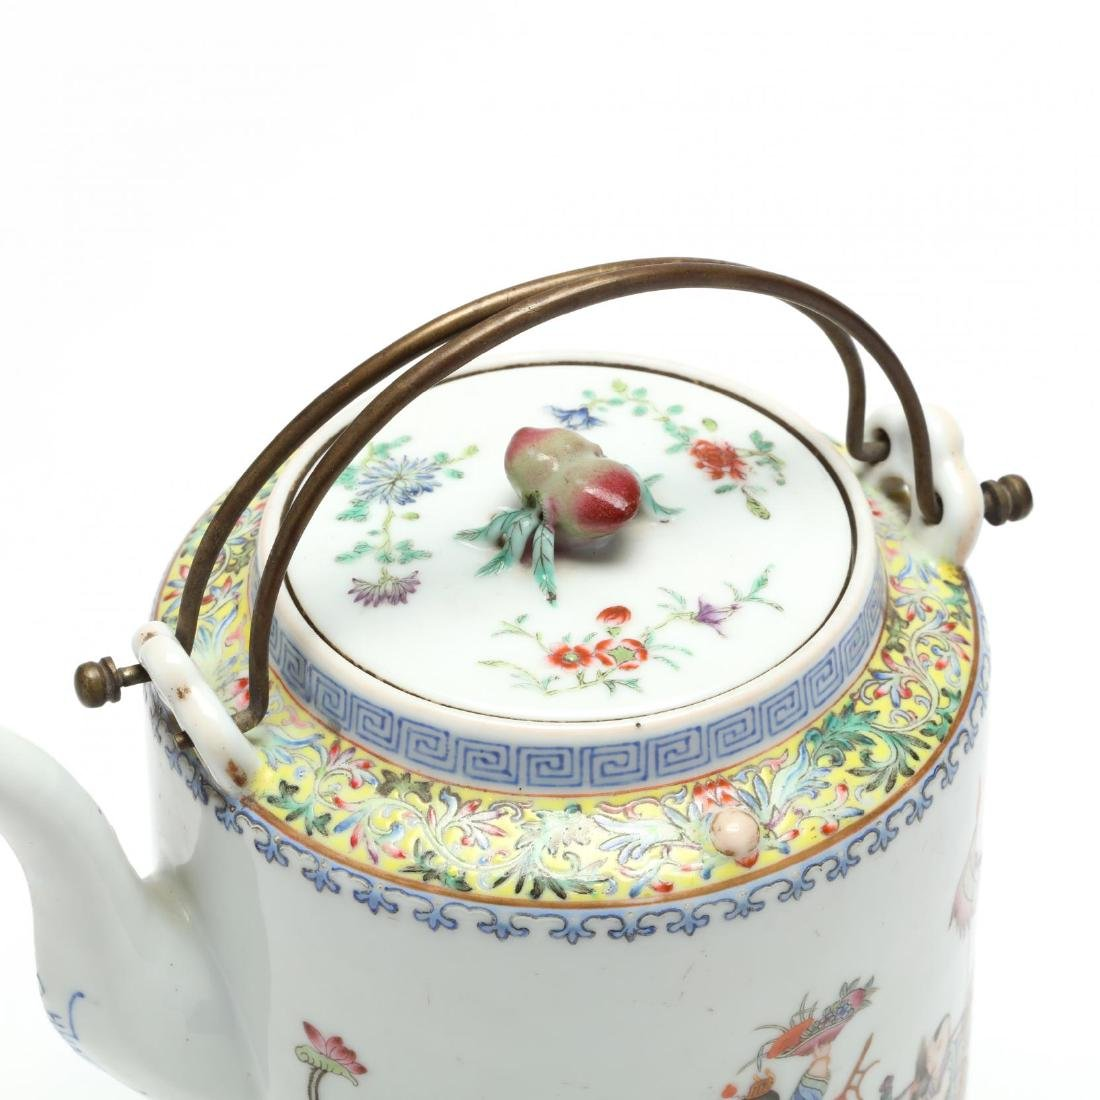 A Chinese Qing Dynasty Porcelain Teapot - 2